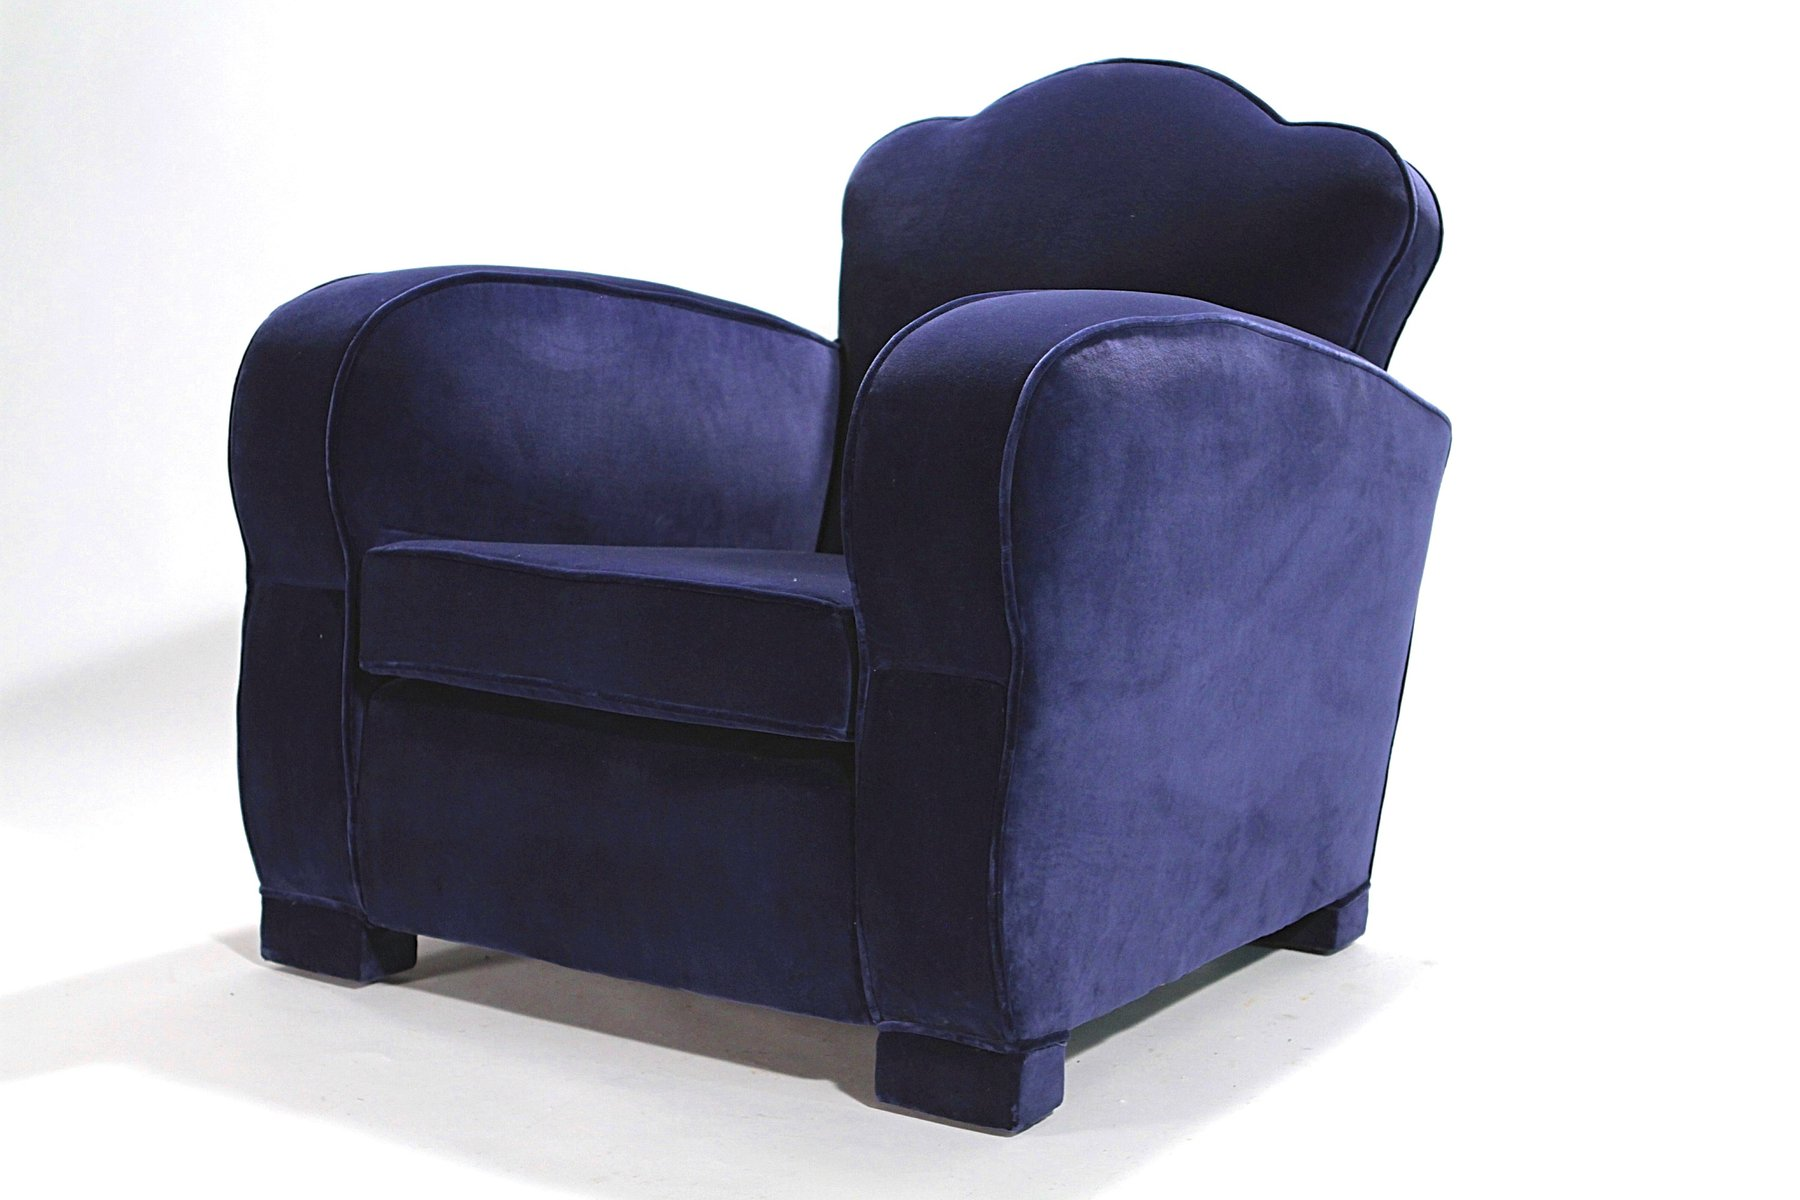 blue velvet club chairs 1940s set of 2 for sale at pamono. Black Bedroom Furniture Sets. Home Design Ideas